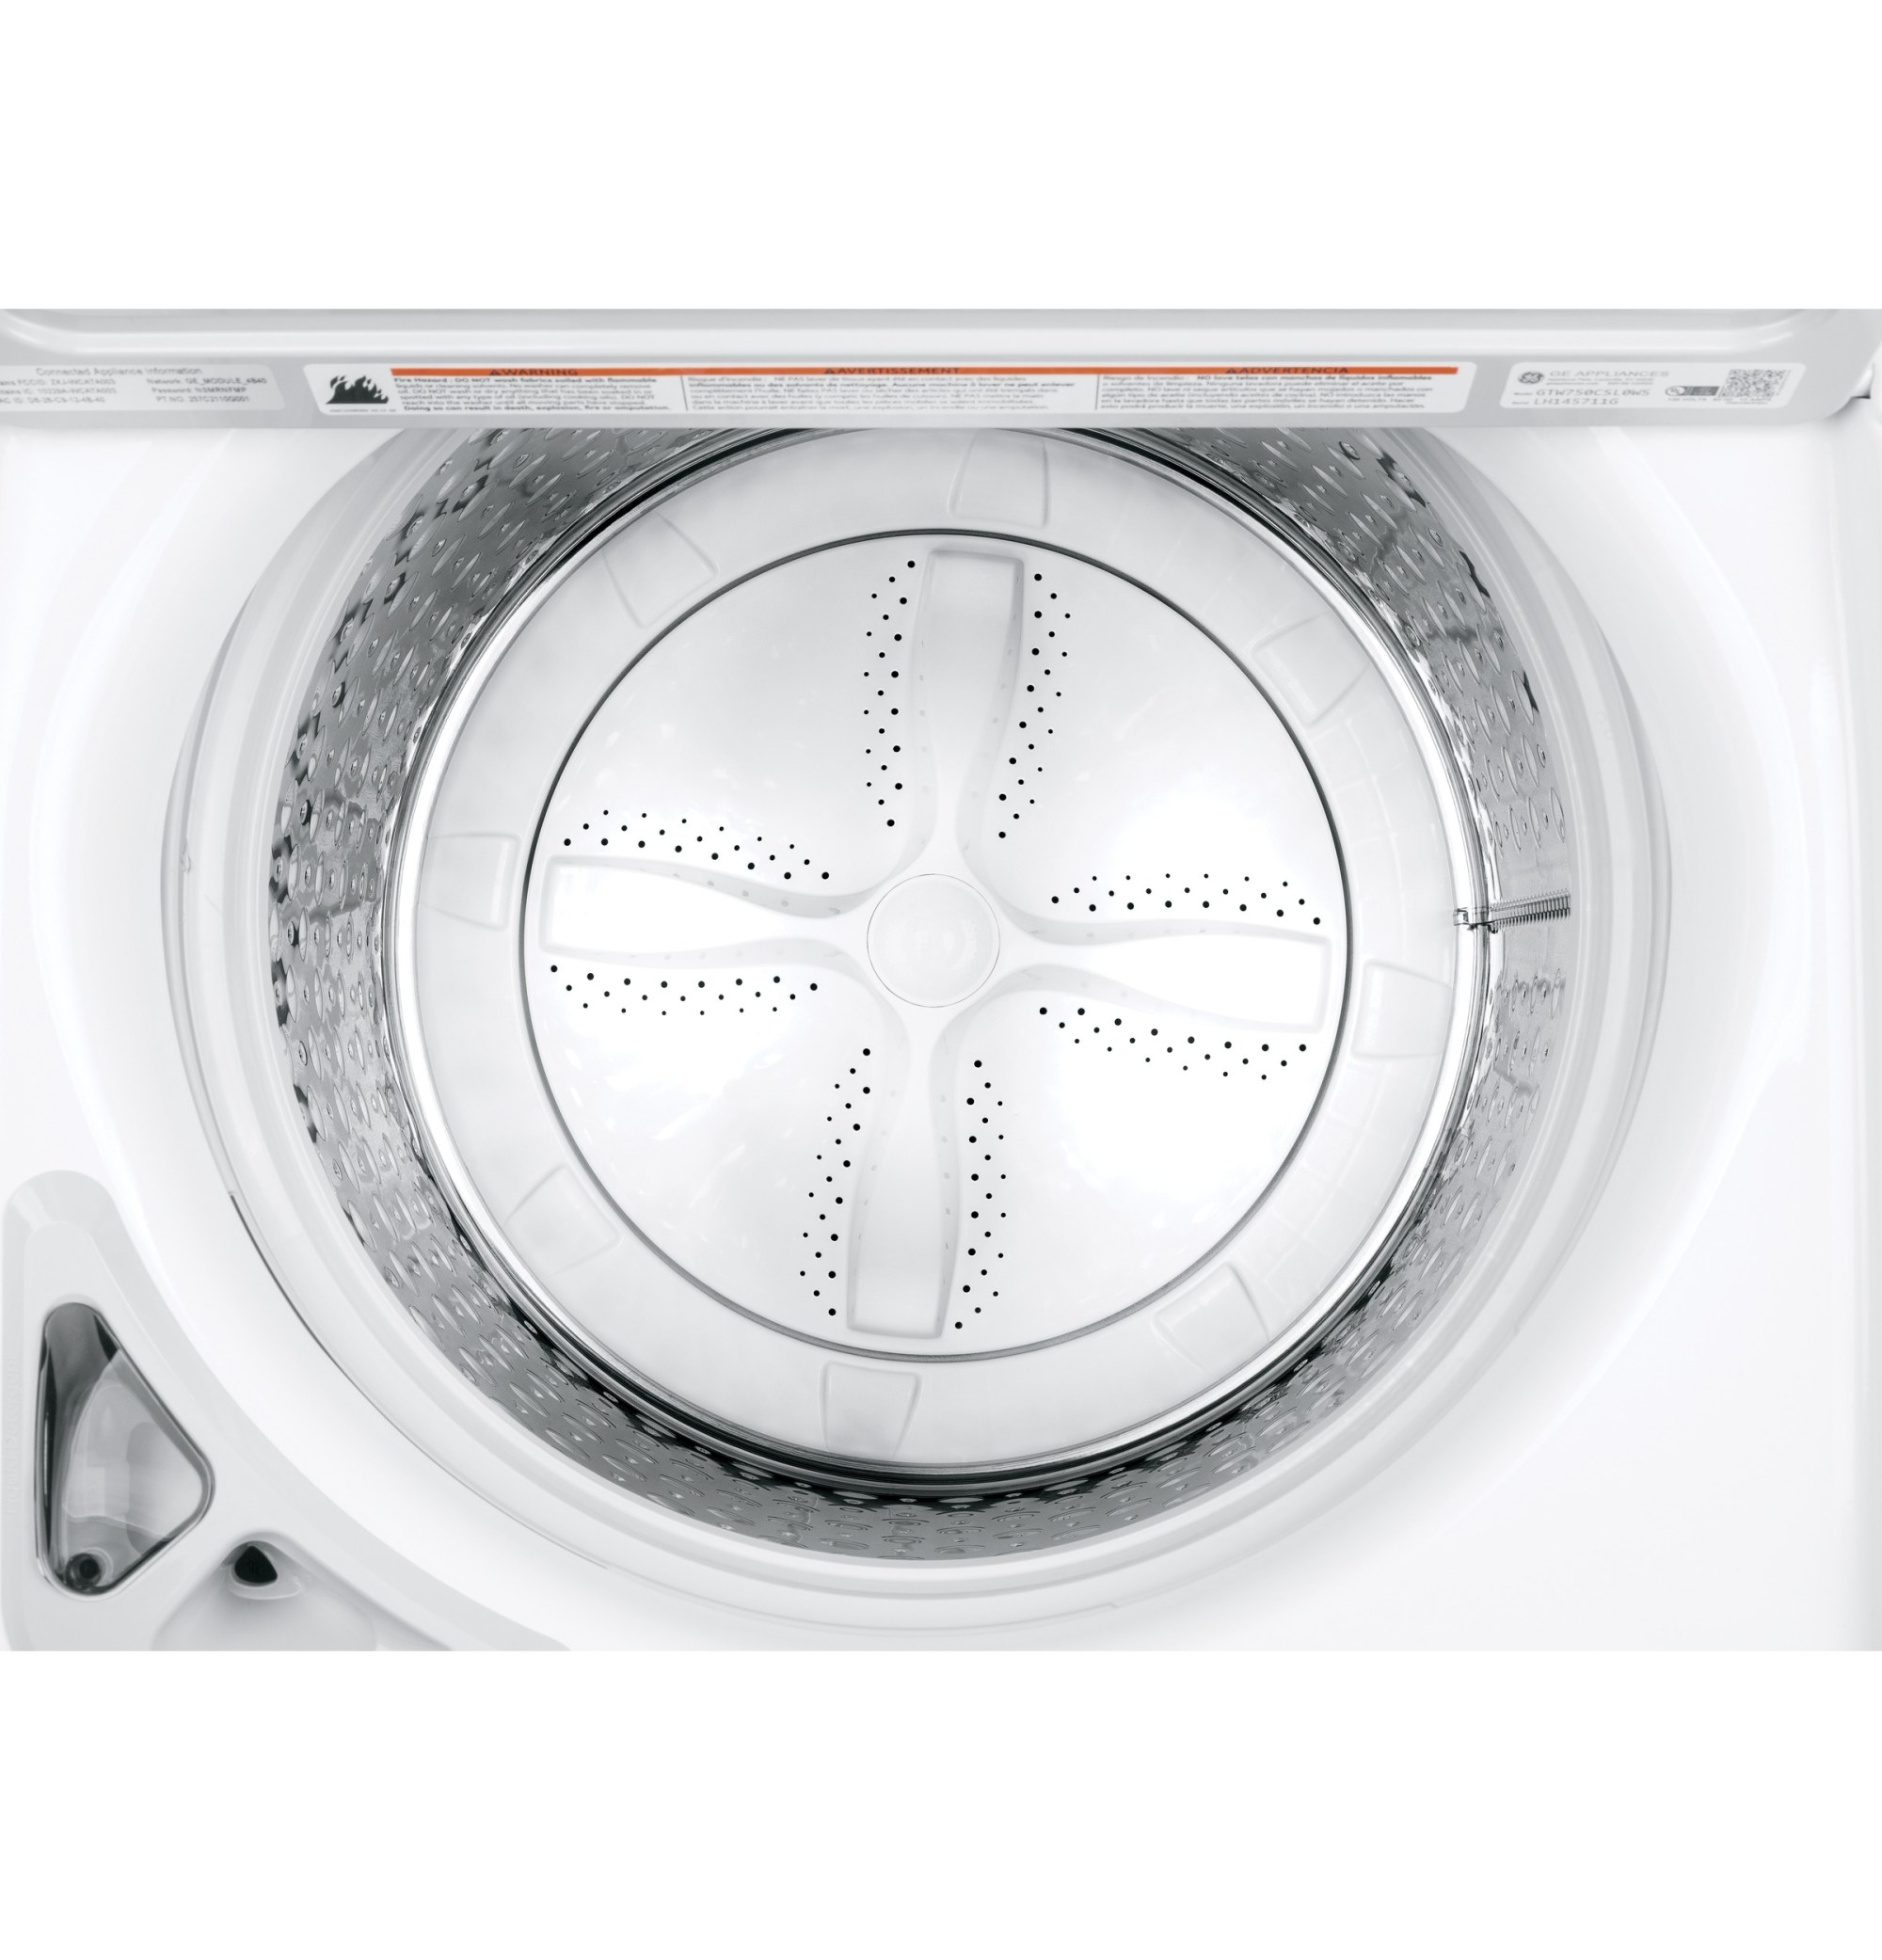 hight resolution of model gtw750cslws ge 5 0 cu ft capacity washer with stainless steel